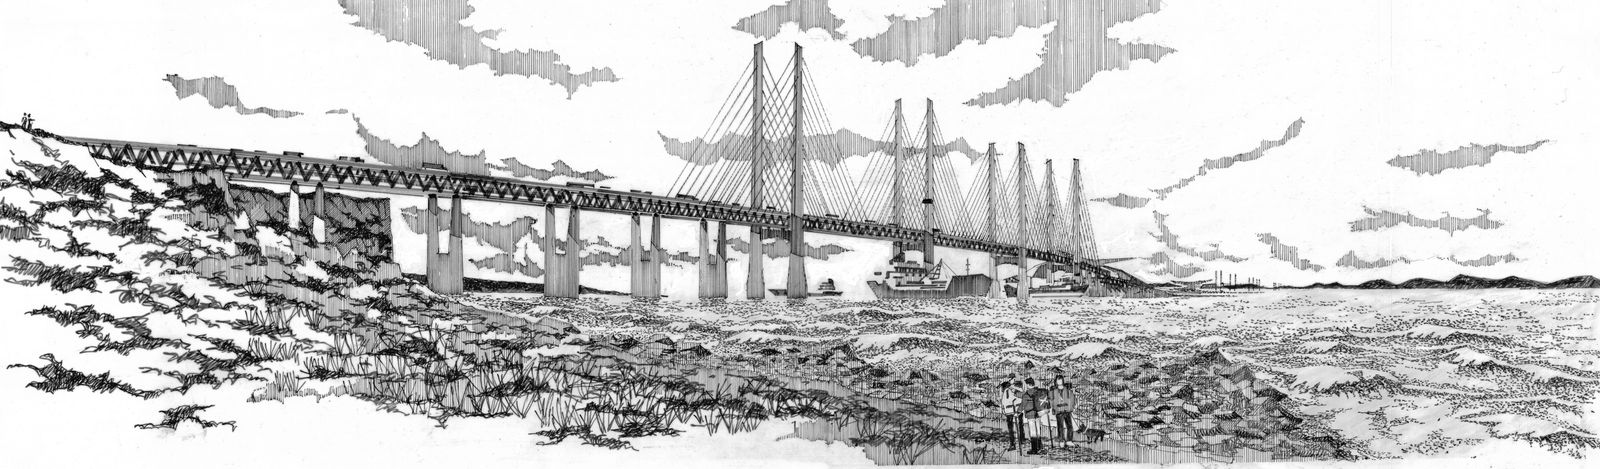 Architect Alan Dunlop's visualisation of a possible suspension bridge between Scotland and Northern Ireland.